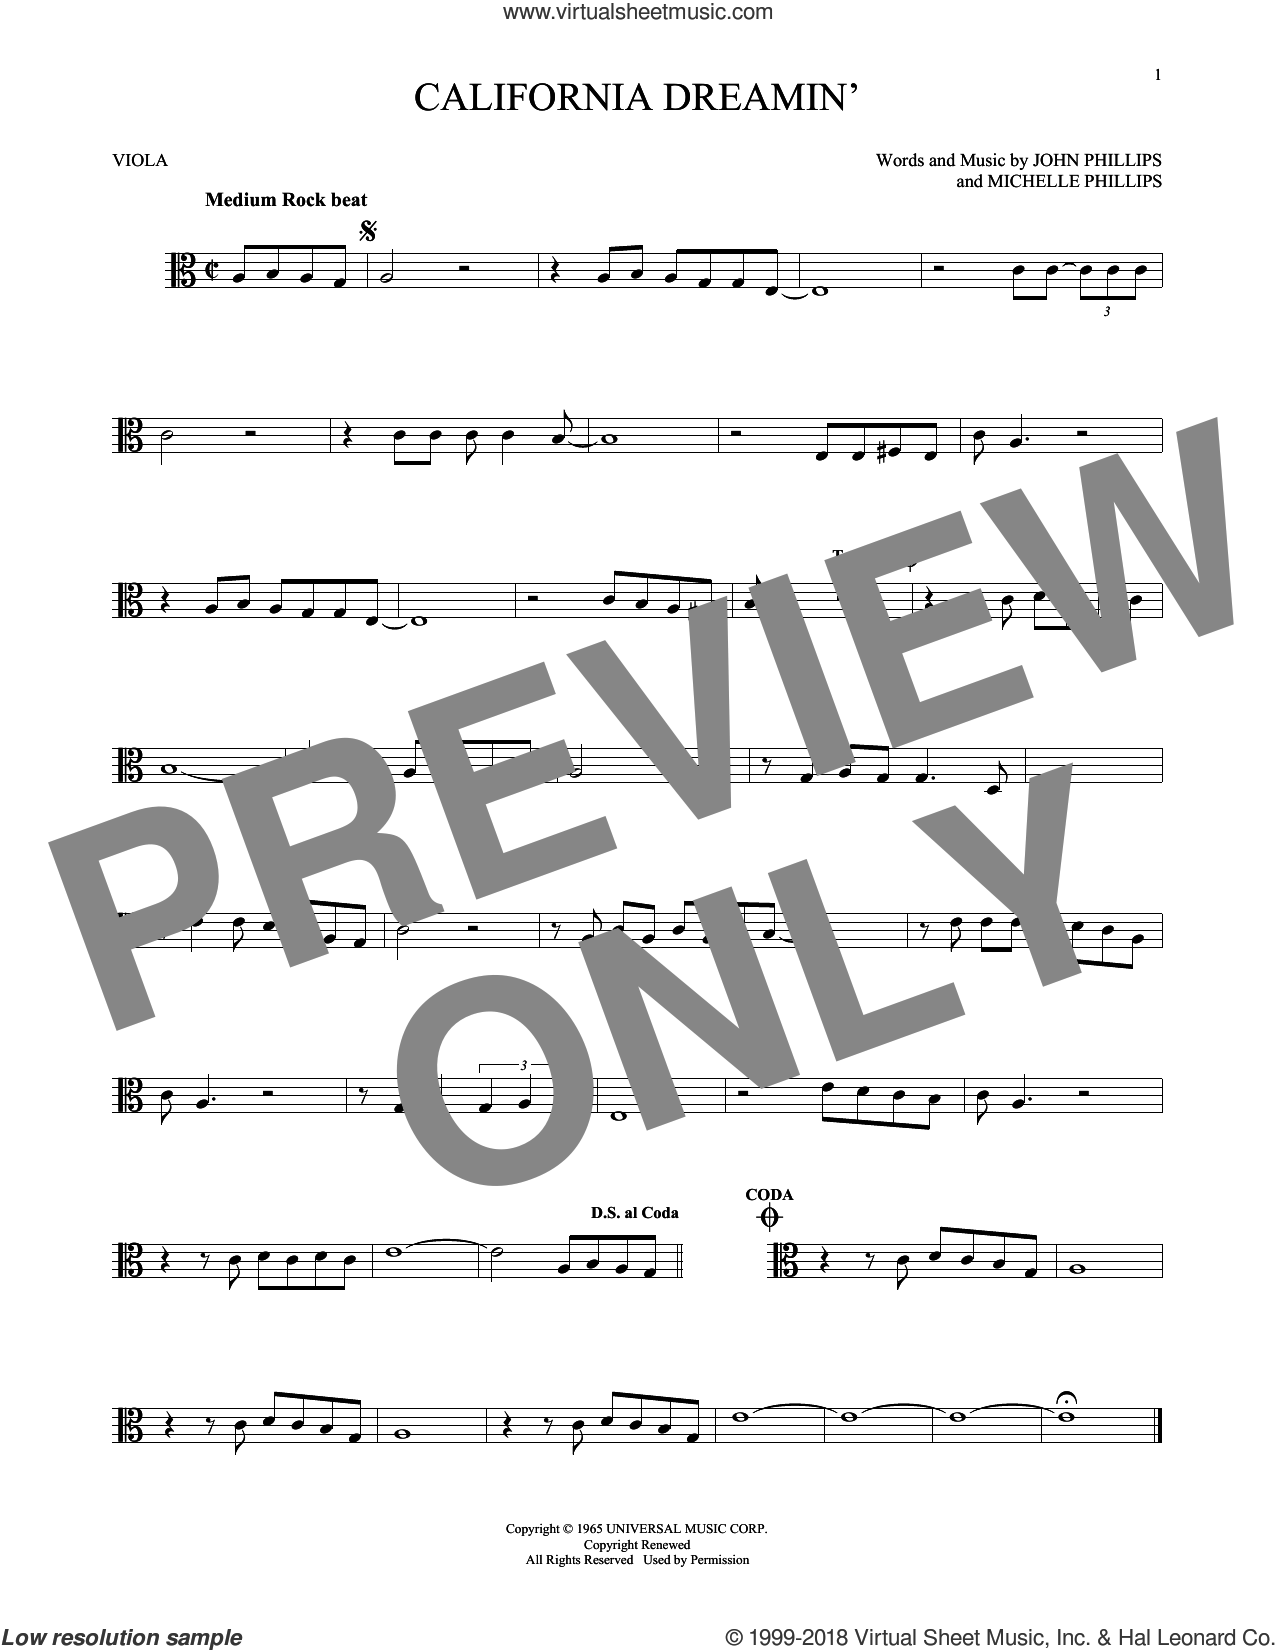 California Dreamin' sheet music for viola solo by The Mamas & The Papas, John Phillips and Michelle Phillips, intermediate skill level